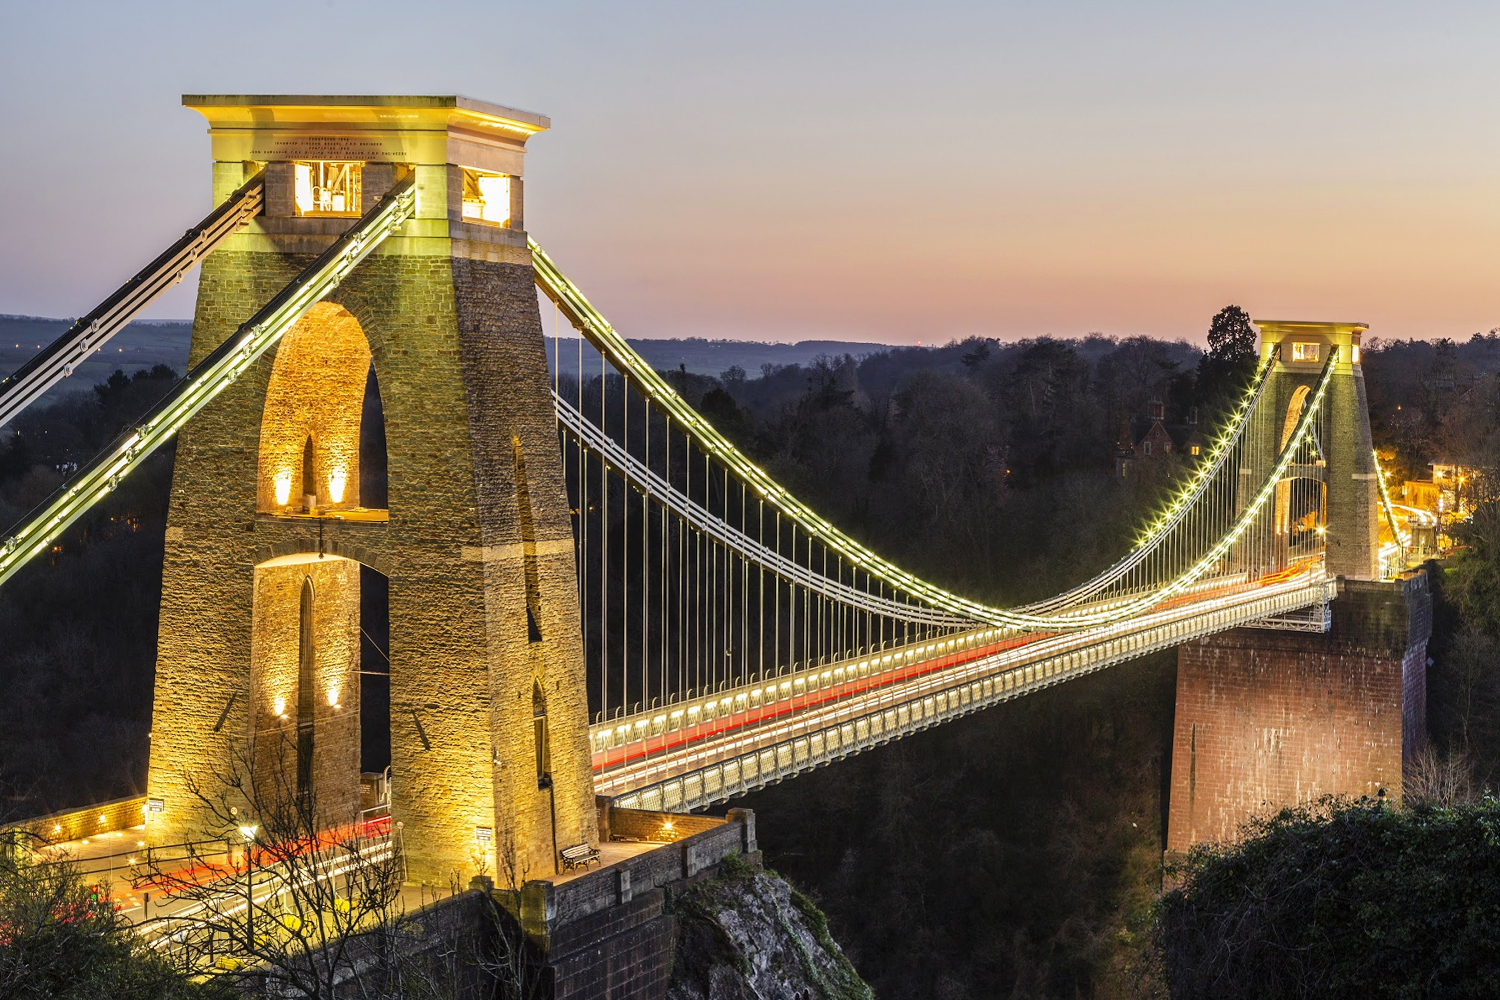 Clifton suspension bridge at night with light trails